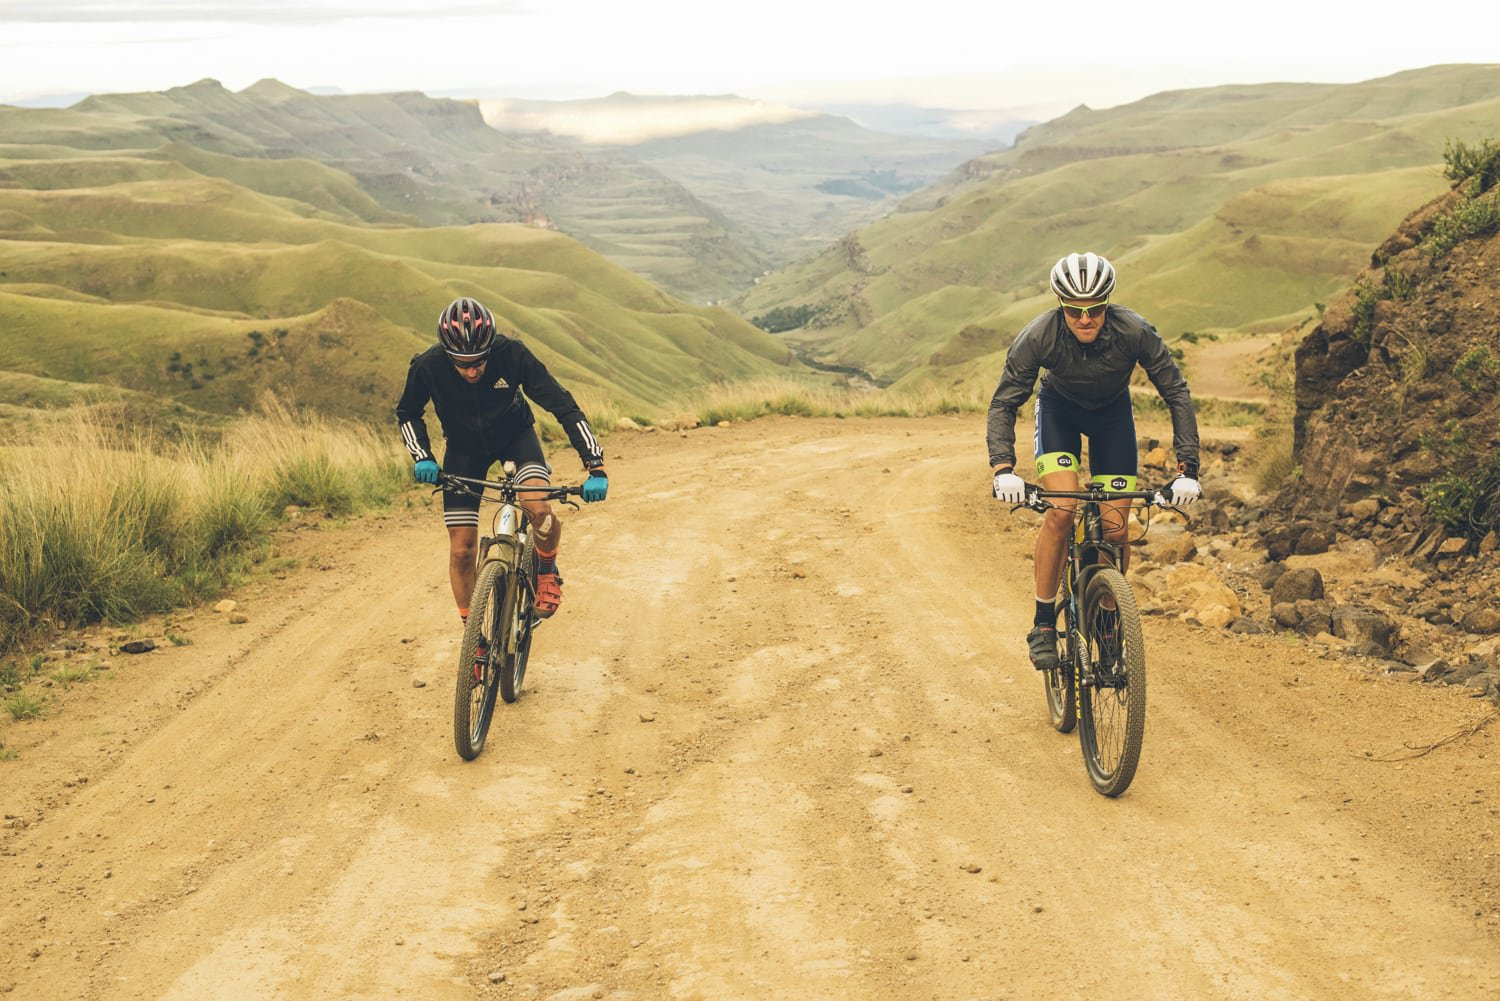 sani-pass-desmond-louw-bicycling-magazine-wowrides-0111